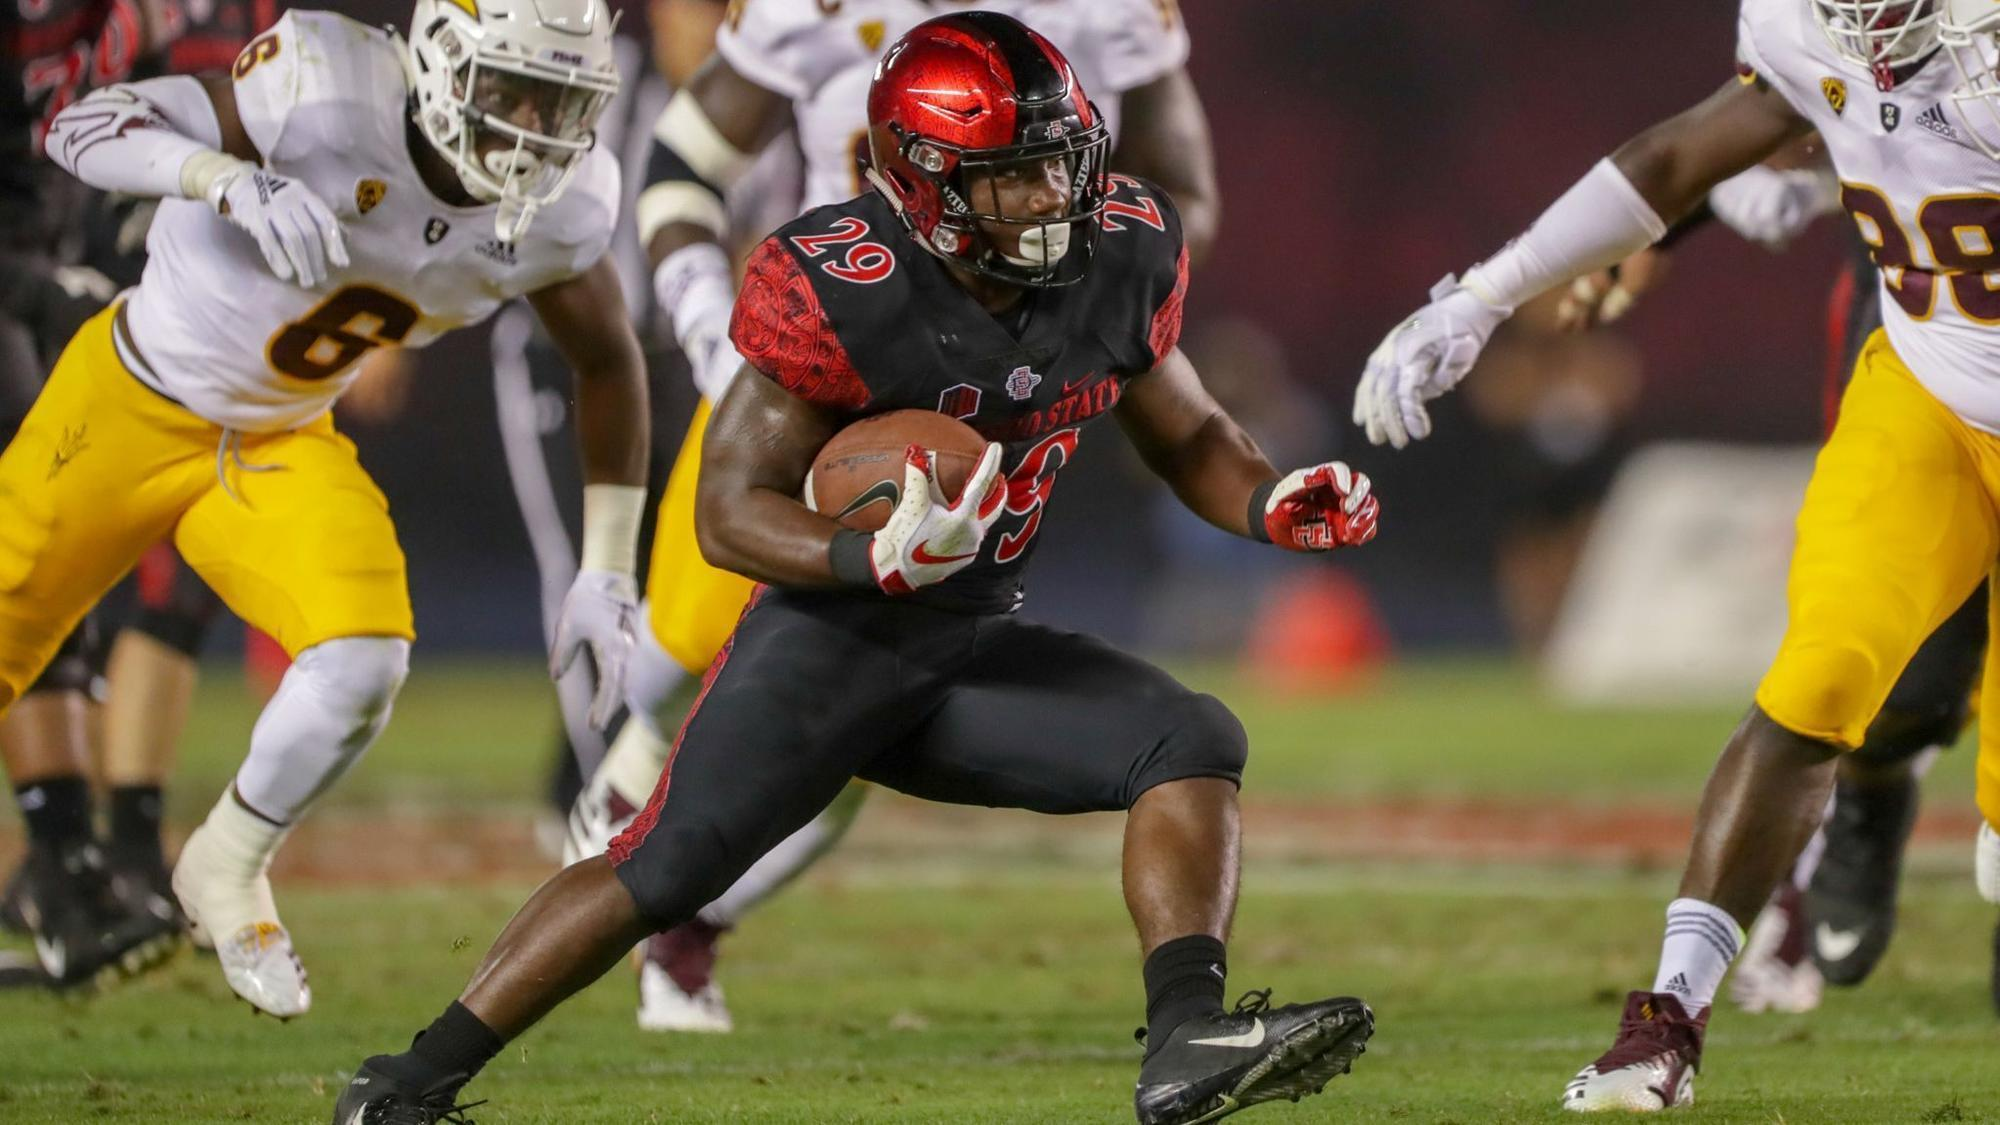 Sd-sp-sdsu-football-juwan-washington-out-six-weeks-with-fractured-clavicle-0925